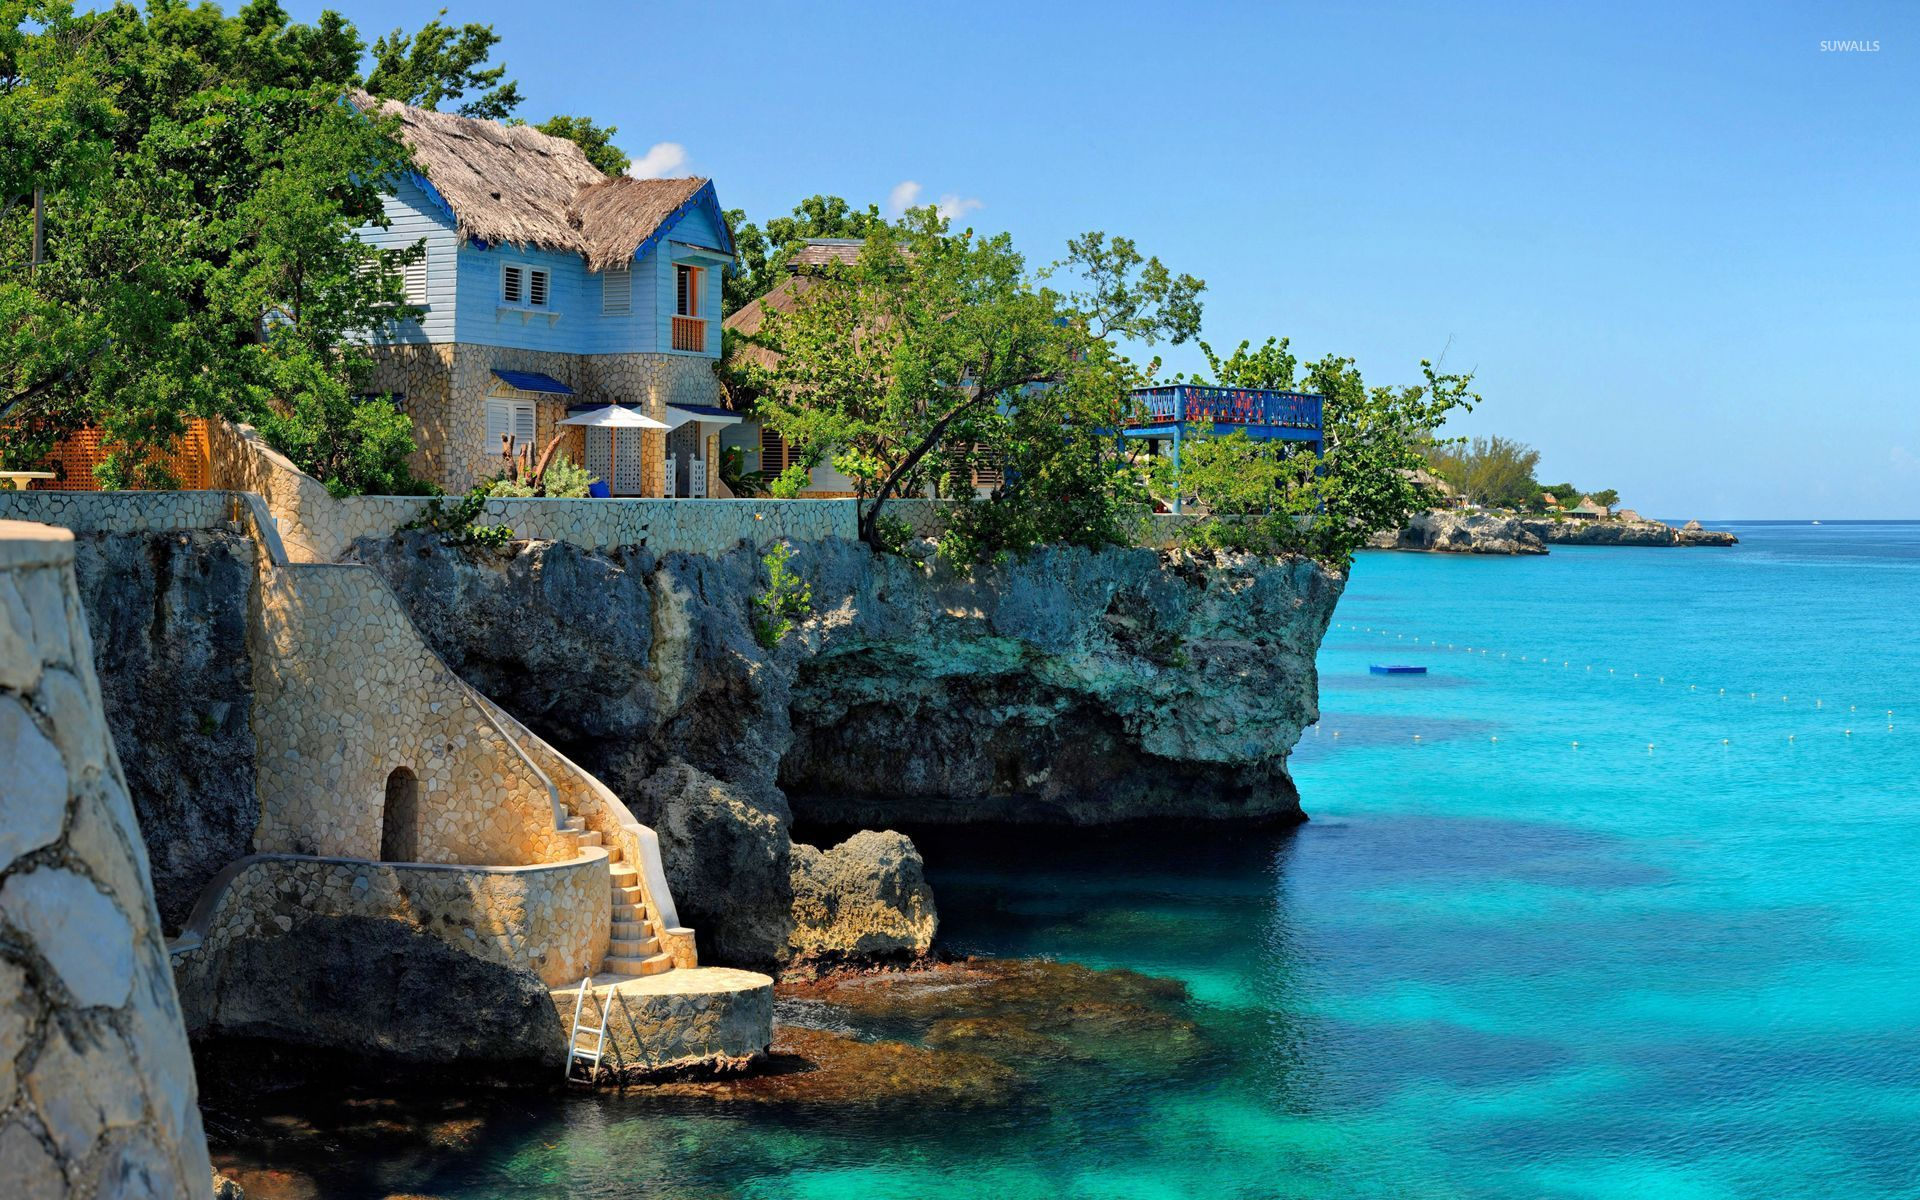 Coastal House In Negril Jamaica Wallpaper